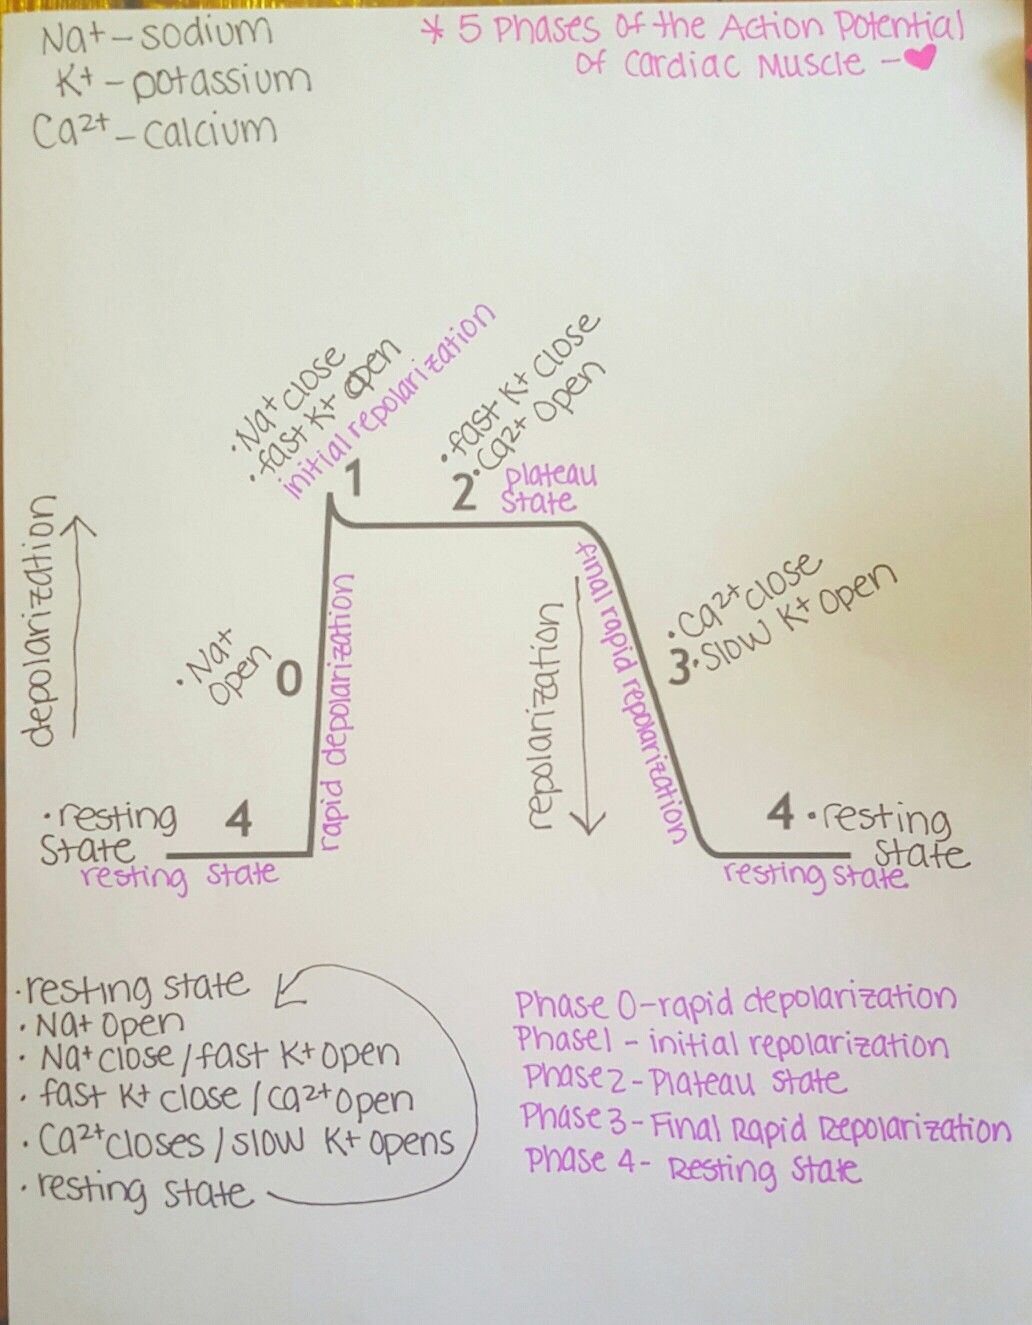 5 phases of the action potential of cardiac muscle step by step 5 phases of the action potential of cardiac muscle step by step ccuart Image collections